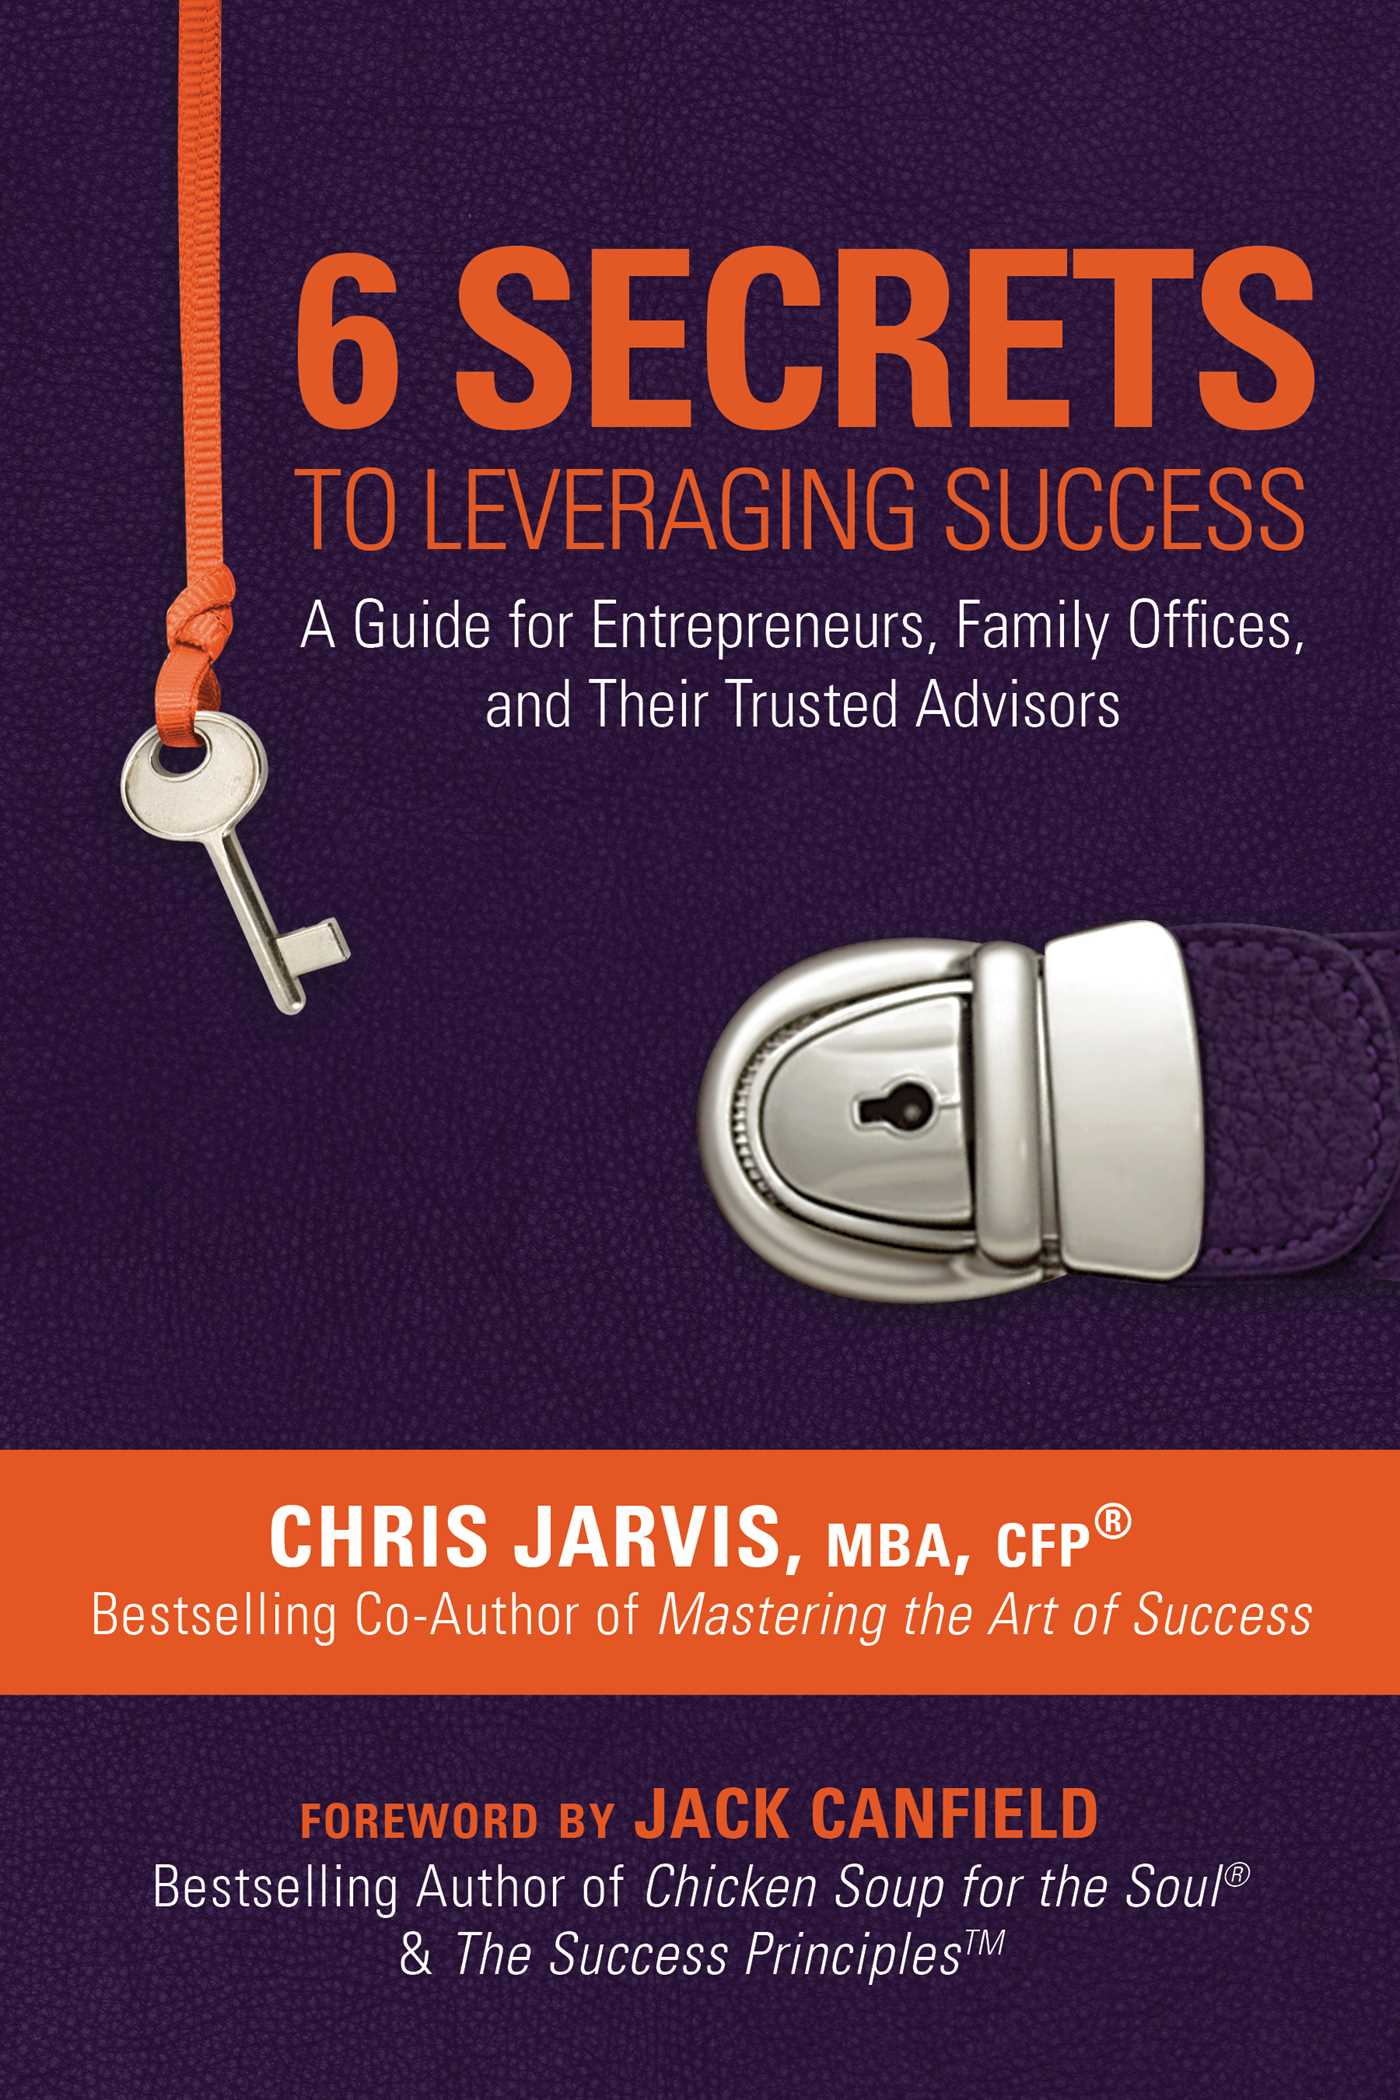 Jarvis assessmetn guide ebook ebooks array 6 secrets to leveraging success book by chris jarvis mba cfp rh simonandschuster com fandeluxe Image collections